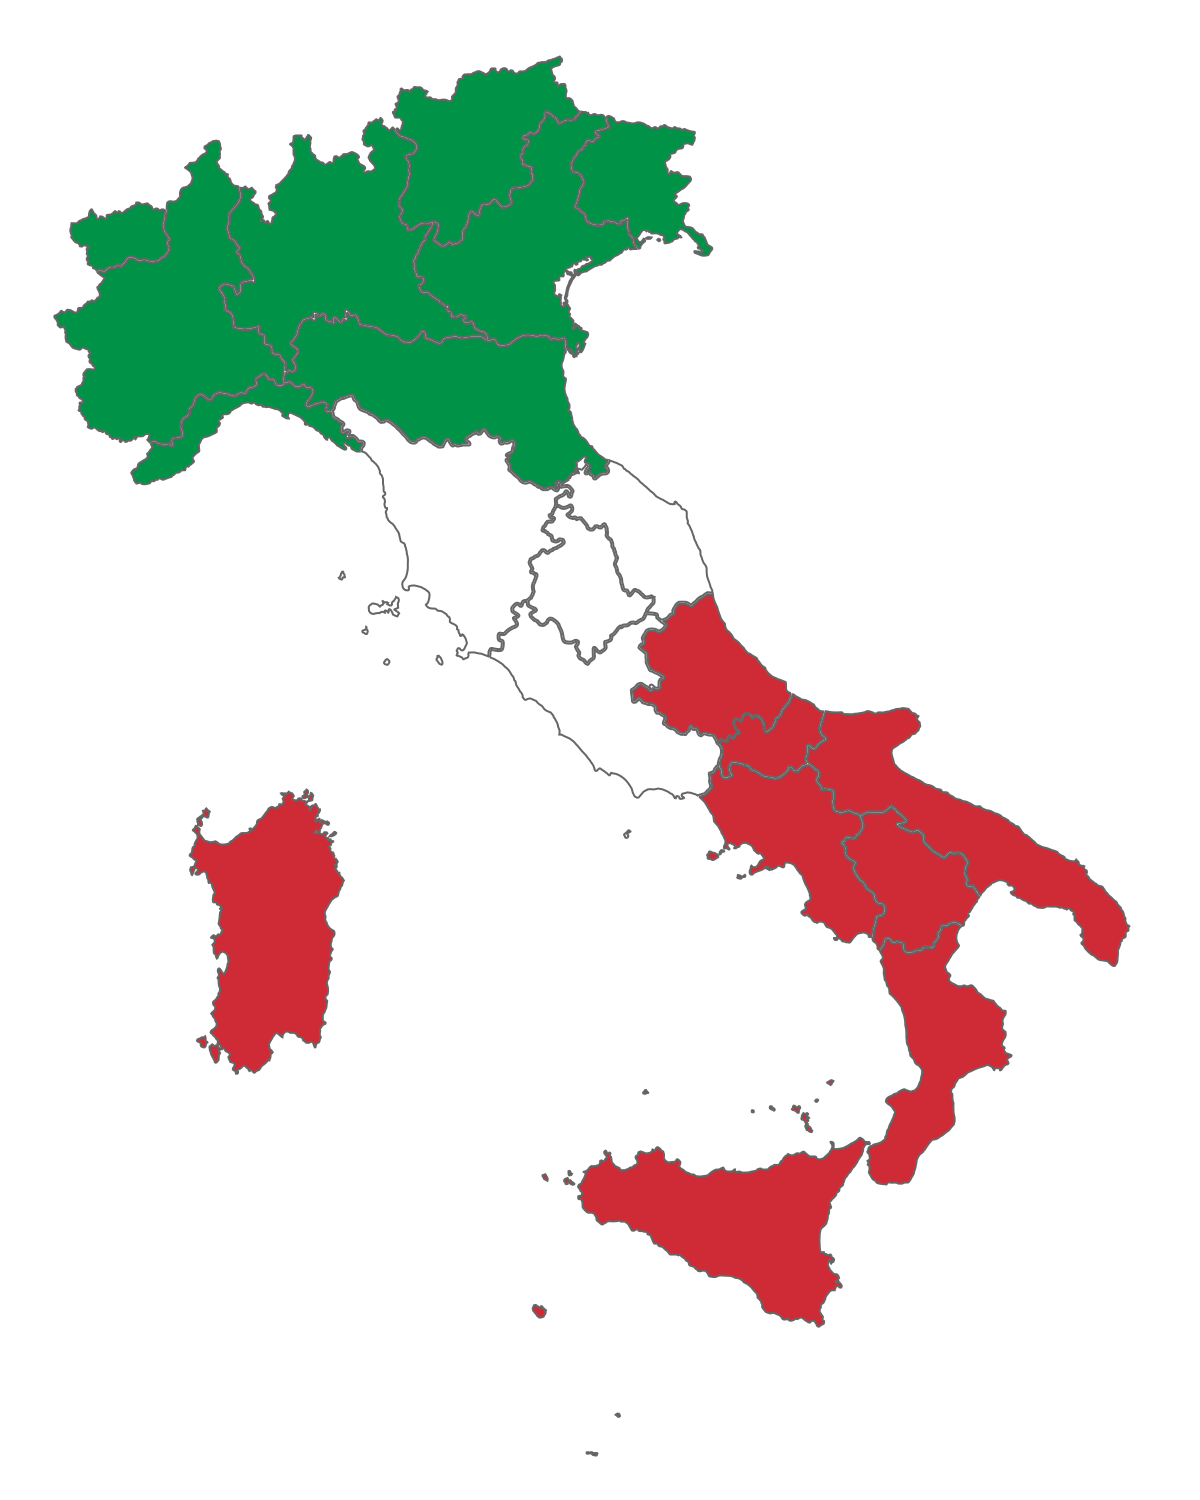 File:Flag map of Italy with regions.png.